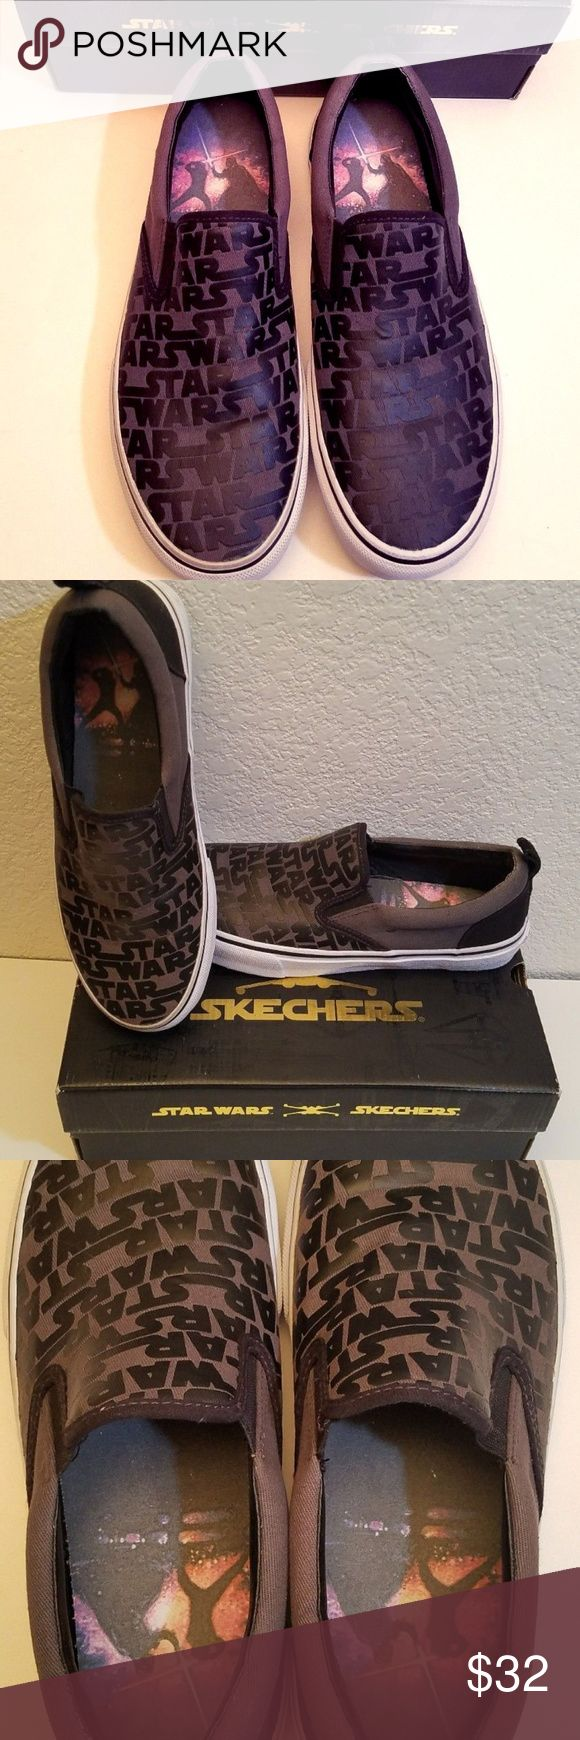 Star Wars Sketchers Mens Slip on Shoes New w/ Box Star Wars Sketchers mens ship on shoes, size 9 I got them for Xmas and they are too big for me They have never been worn, comes with the original box, doesn't include original tags. Sketchers Shoes Loafers & Slip-Ons